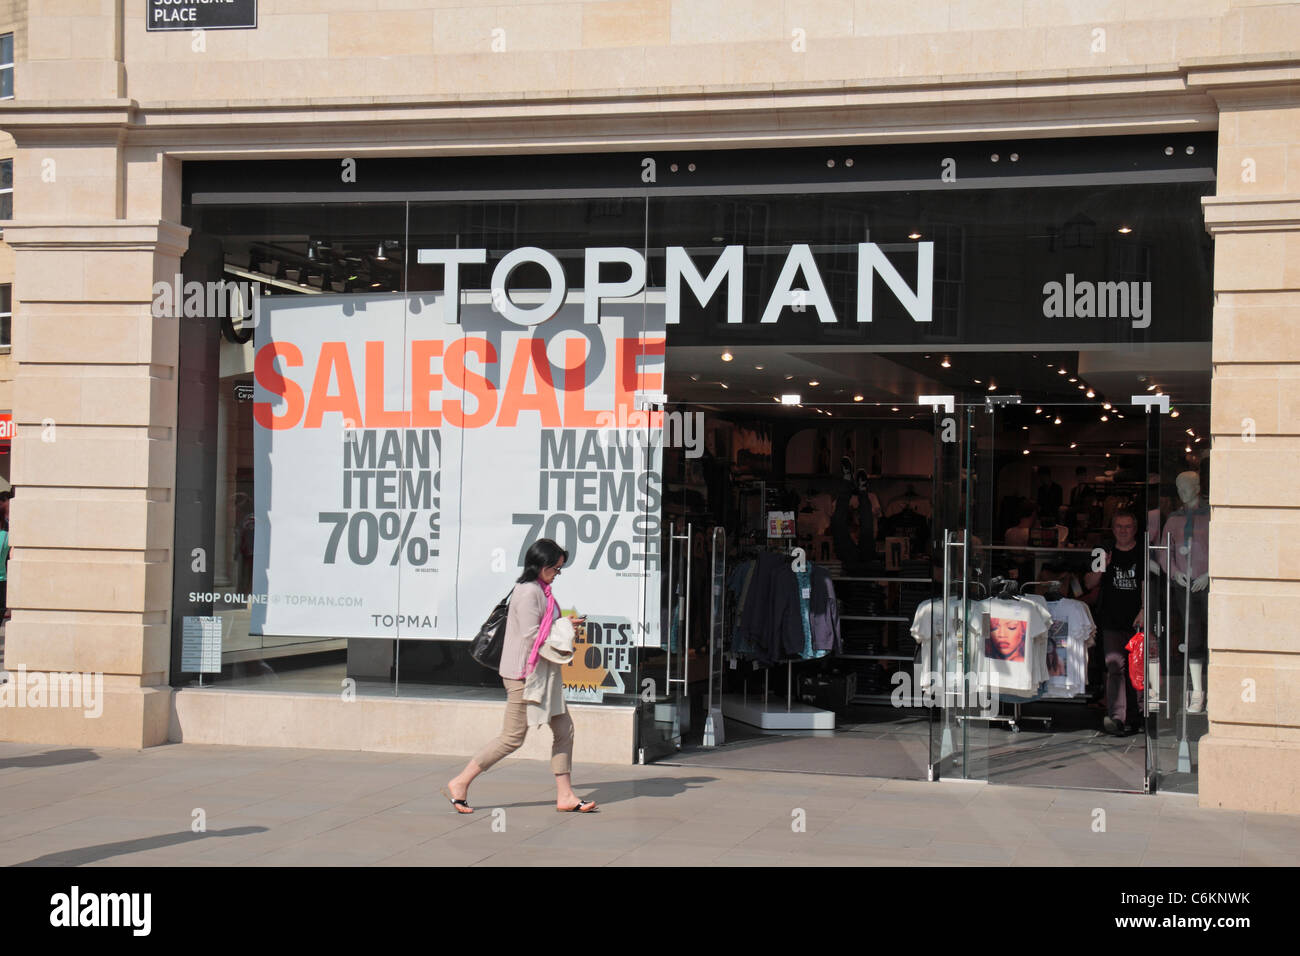 A sale being advertised in the front window of the Topman clothing store,  SouthGate Bath 7da130bdcdf